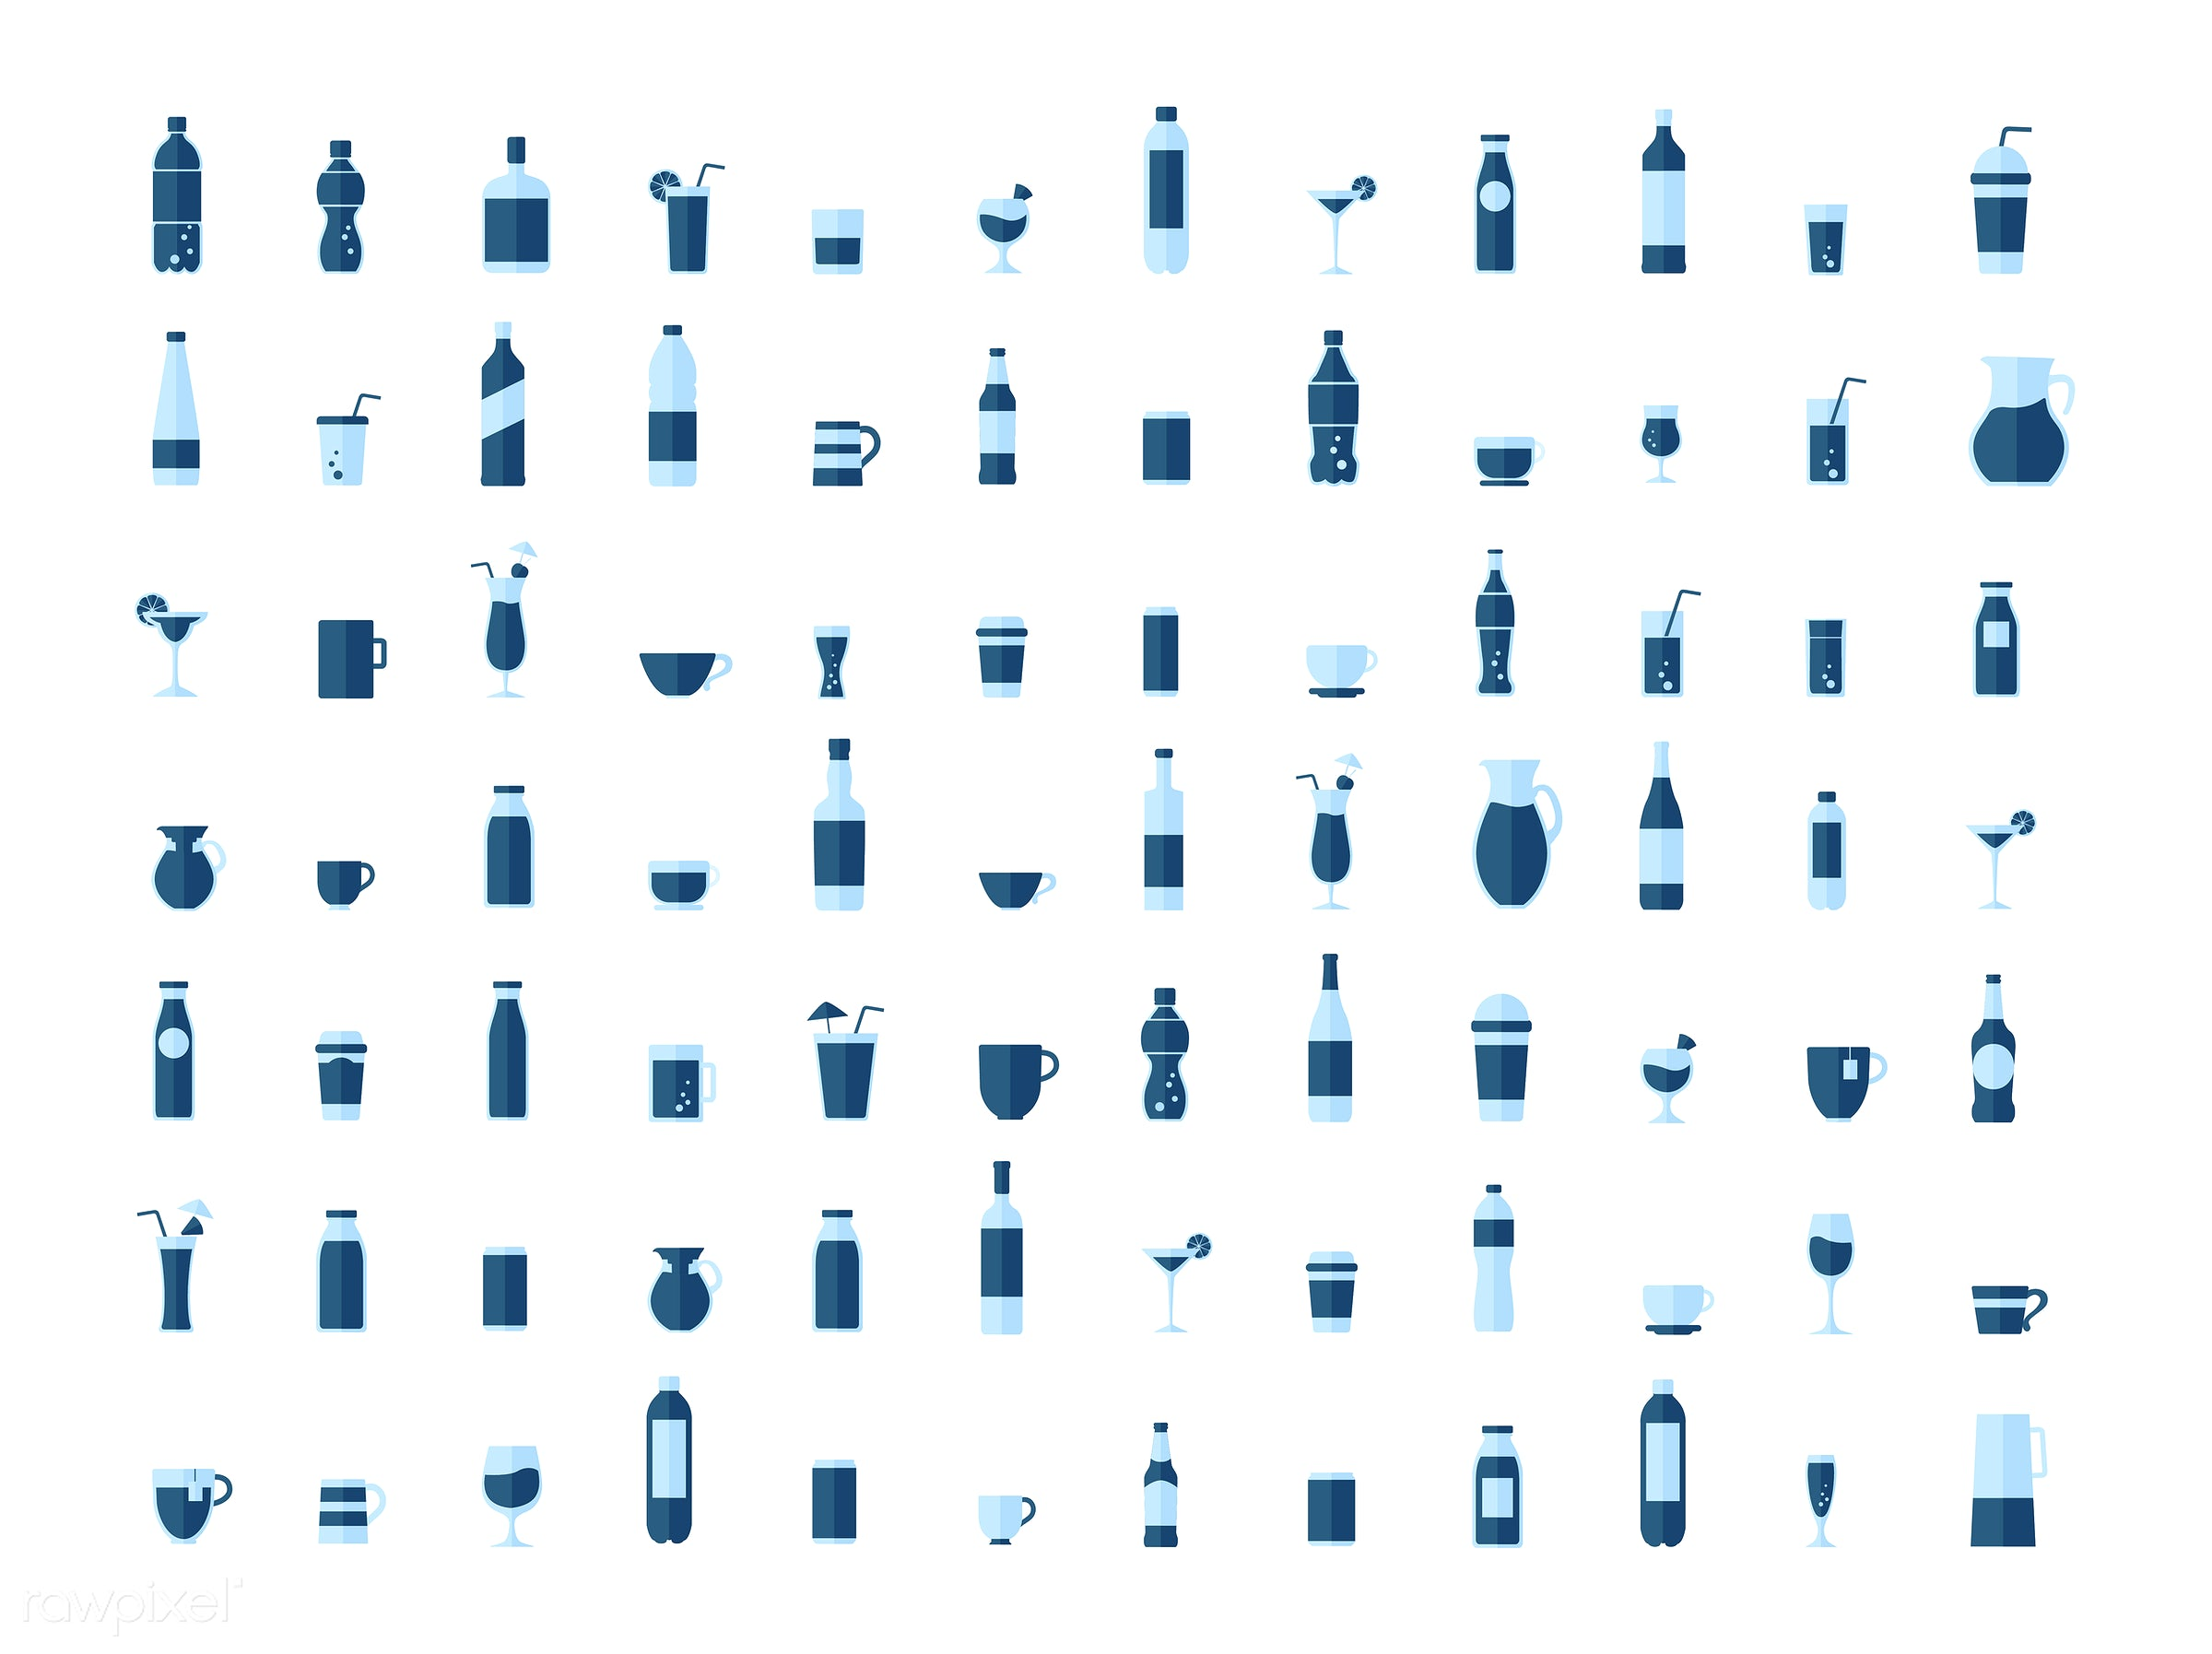 Collection of beverage vectors - vector, graphic, illustration, icon, symbol, collection, set, colorful, cute, beverage,...